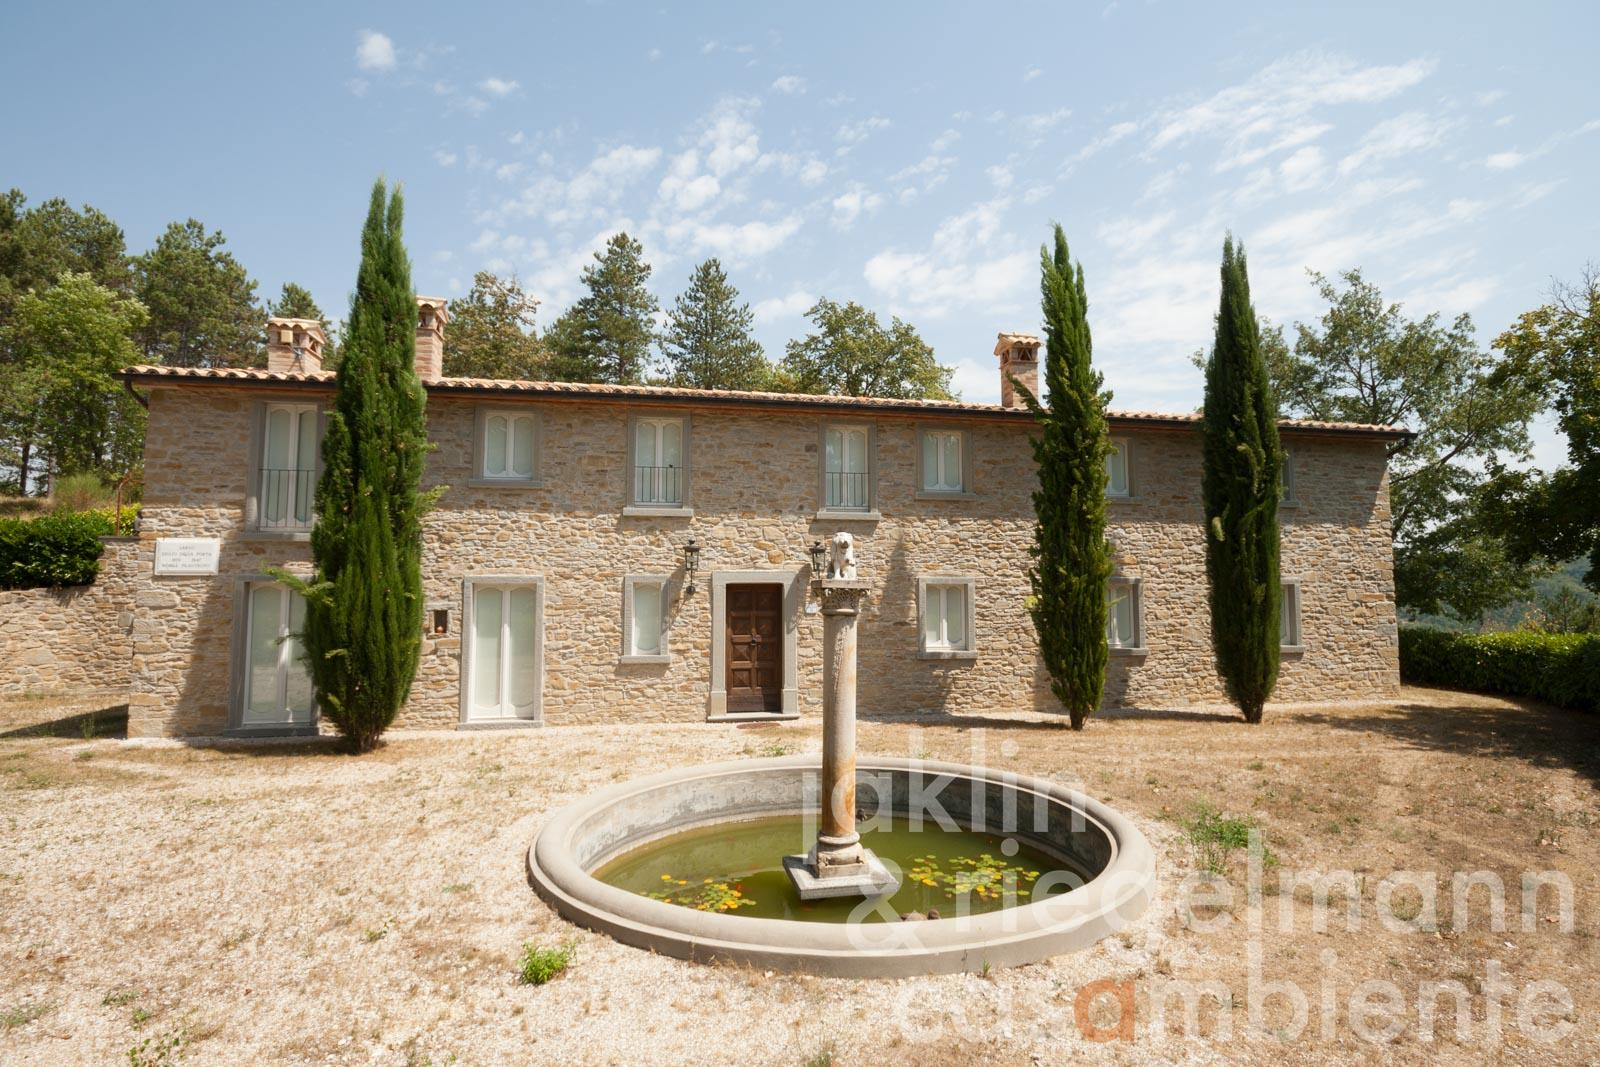 Prestigious villa equipped with noble materials and pool in a hillside location near the medieval village of Montone